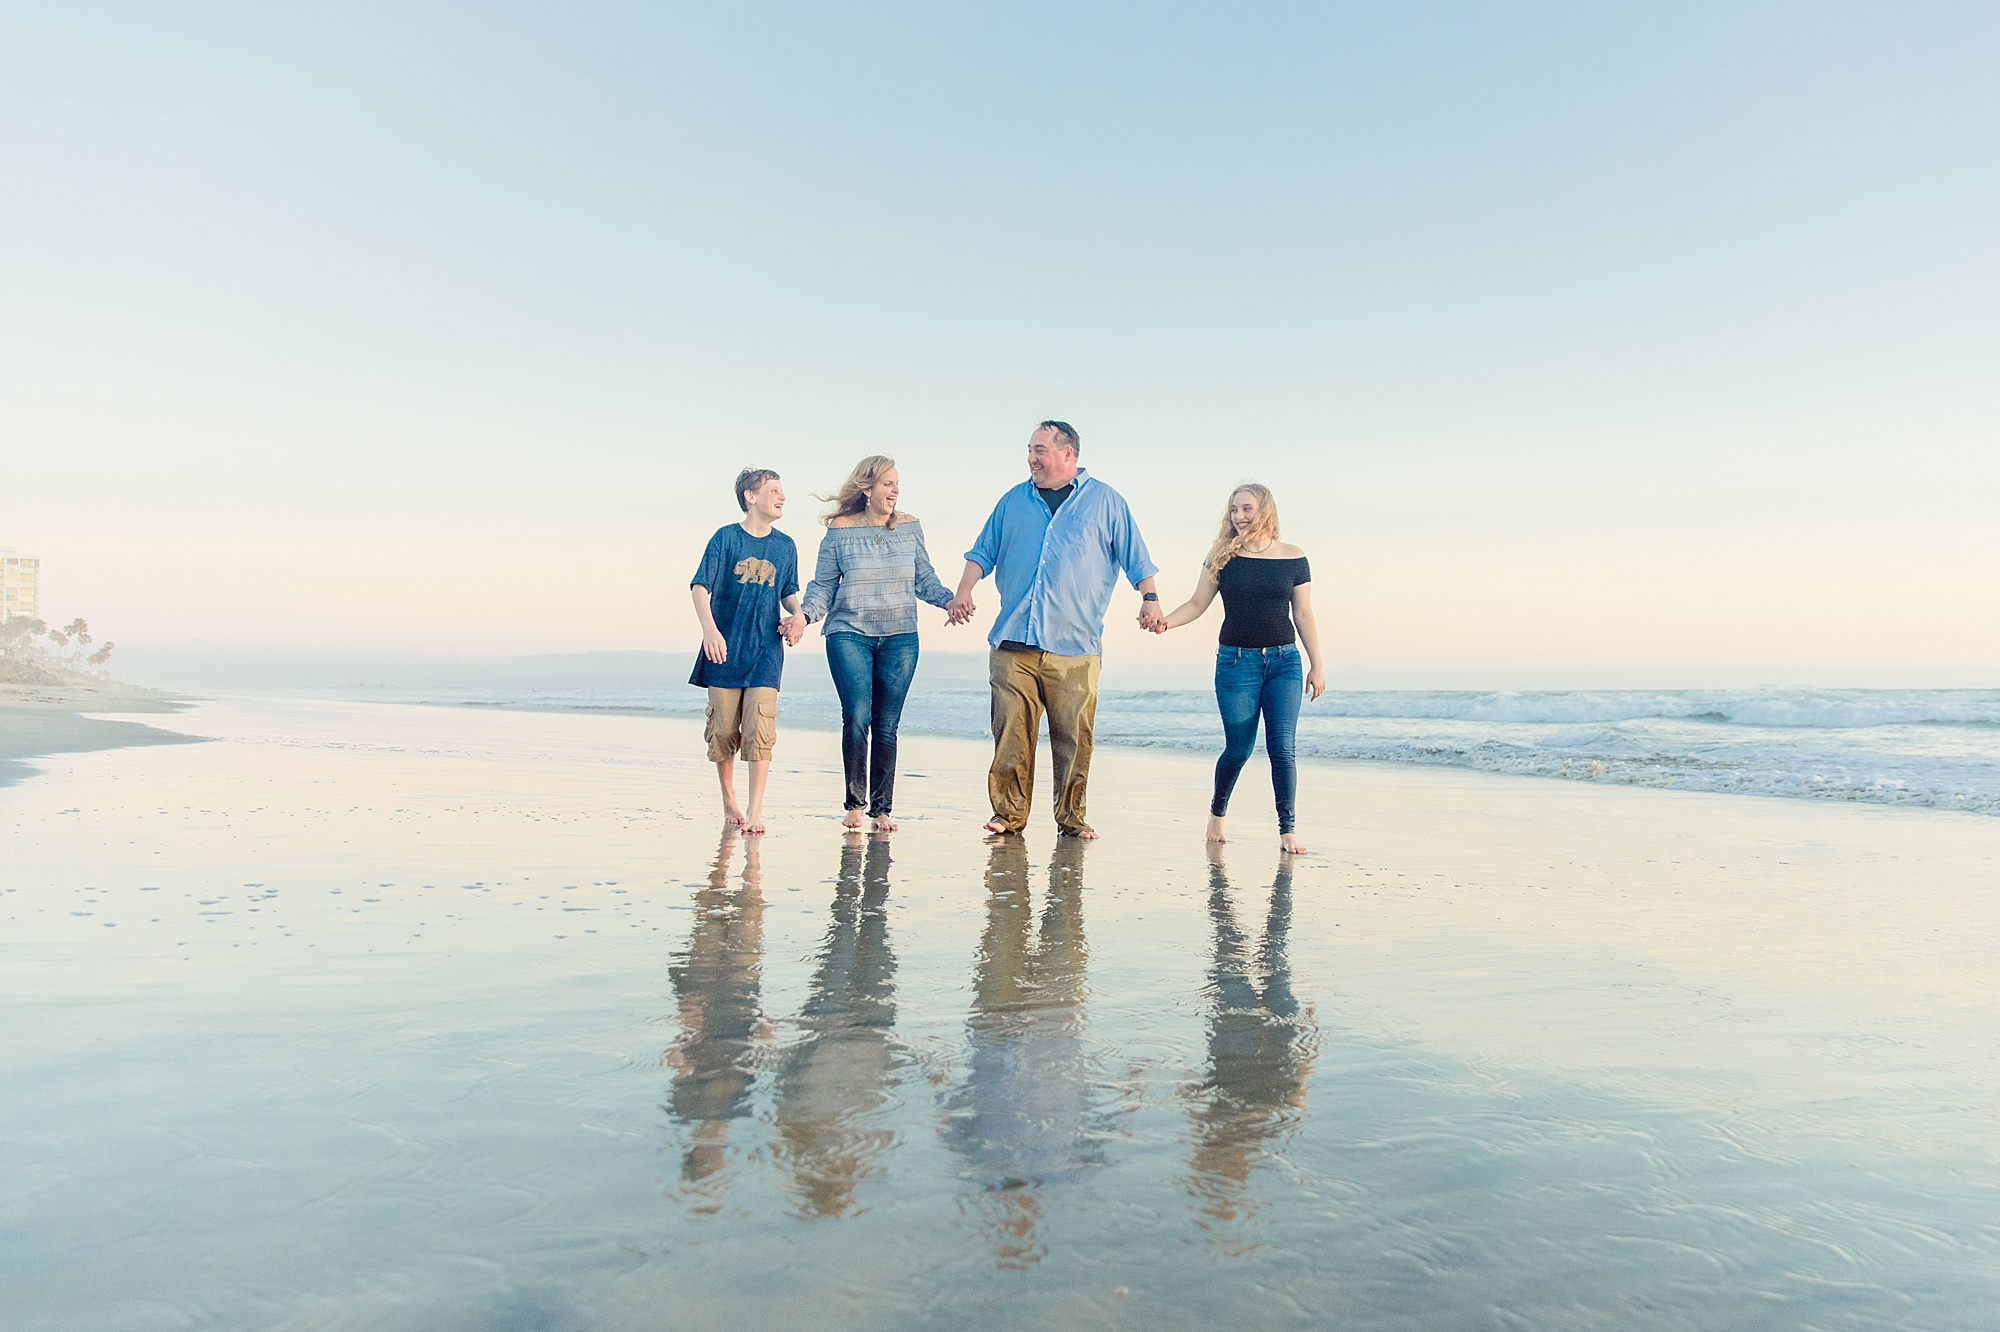 San Diego Family Photography | San Diego Photographer